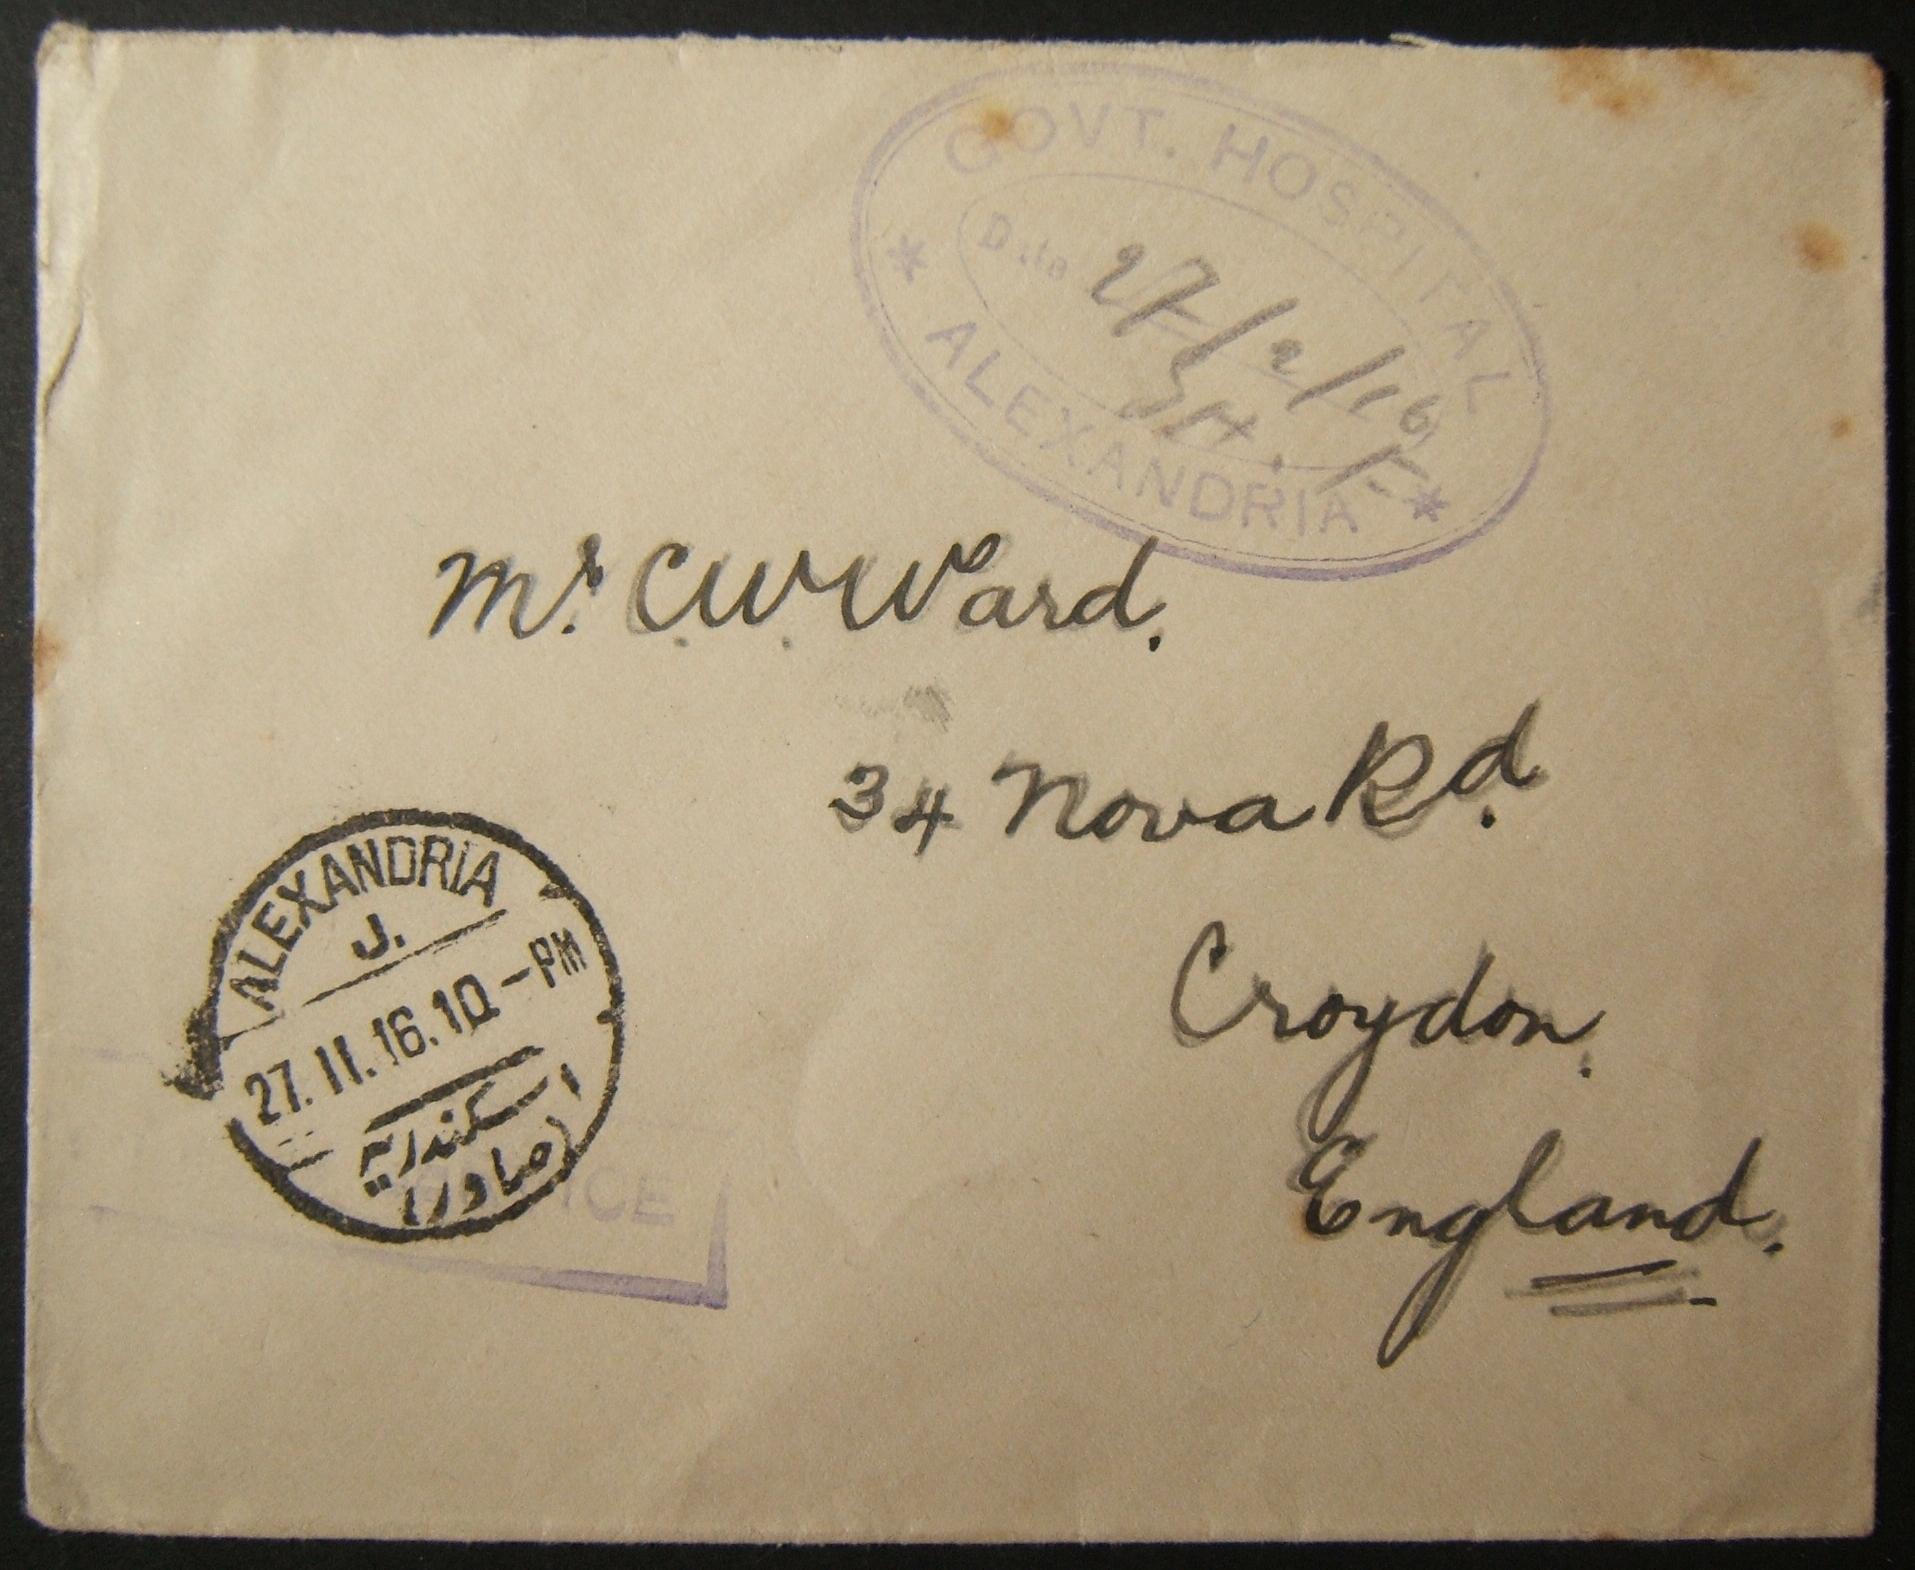 2/1916 WWI unfranked British military mail to UK sent via Egyptian post, with hospital cachet